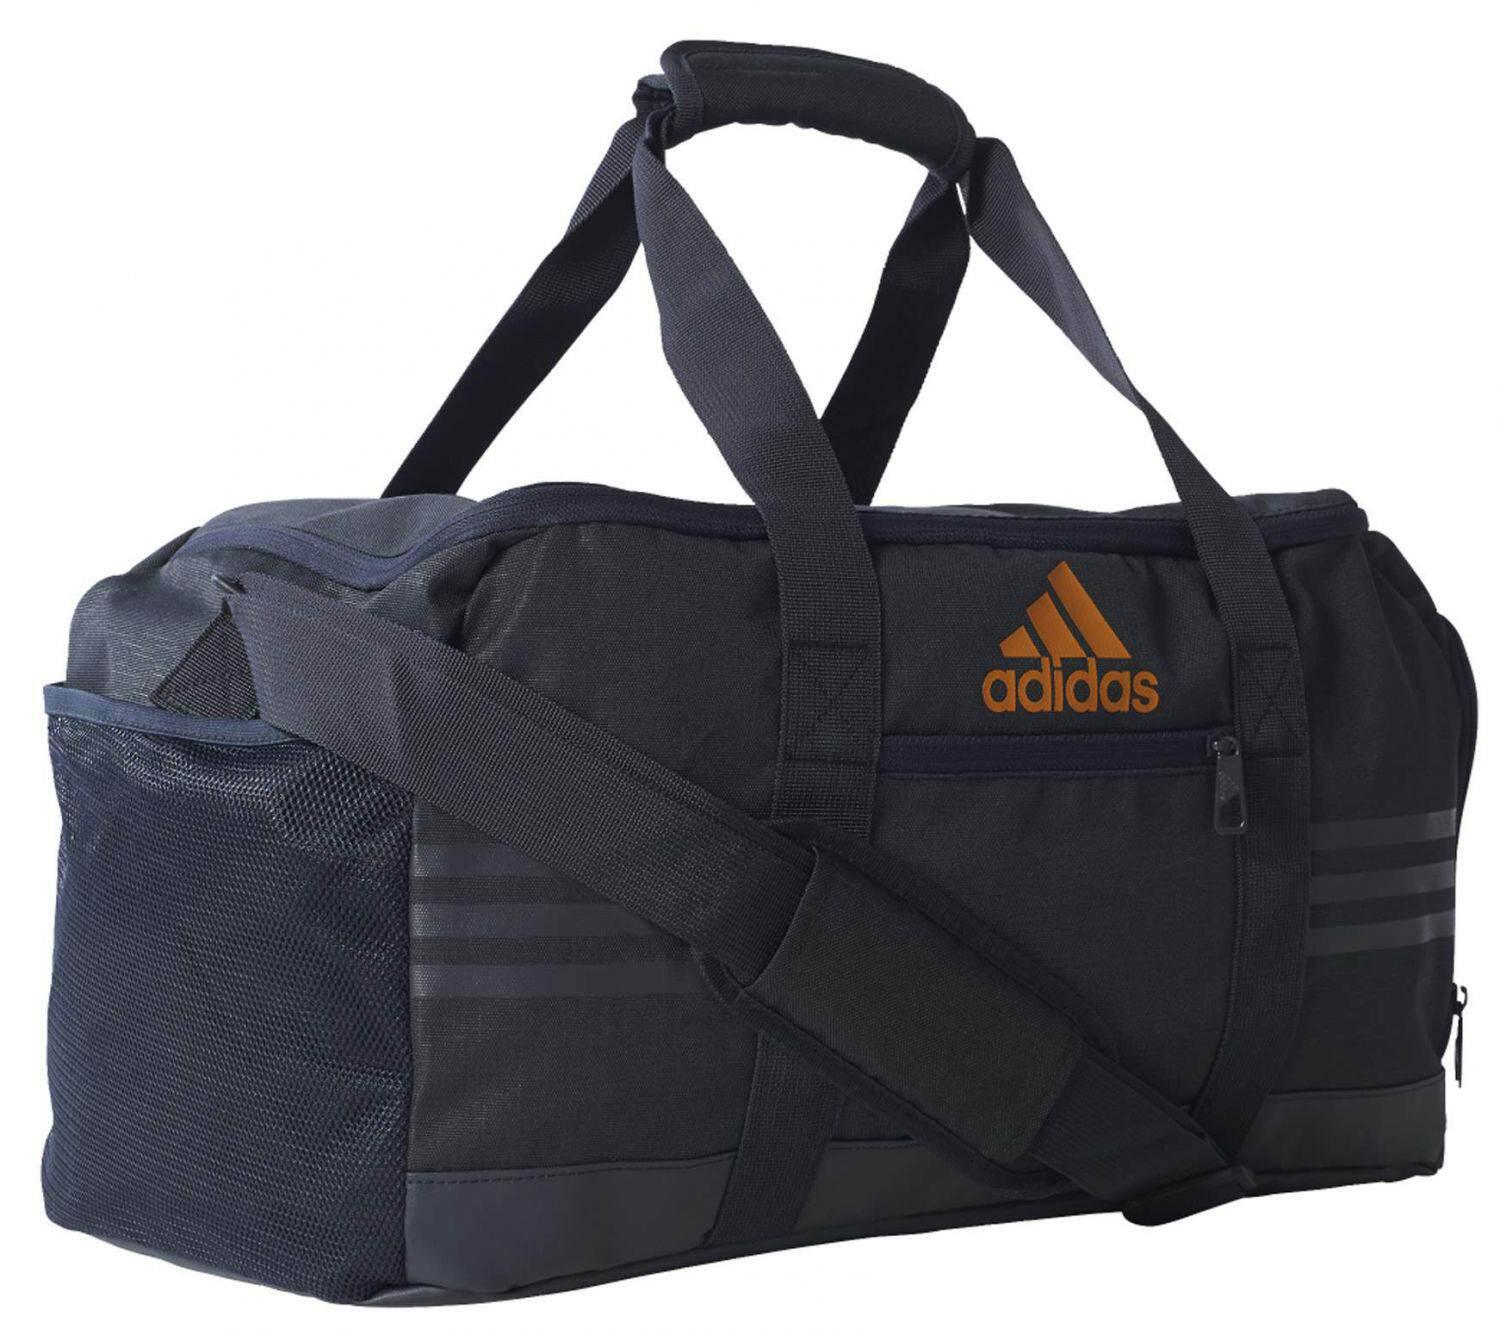 adidas-3s-performance-teambag-s-tasche-farbe-dark-grey-dark-grey-eqt-orange-s16-